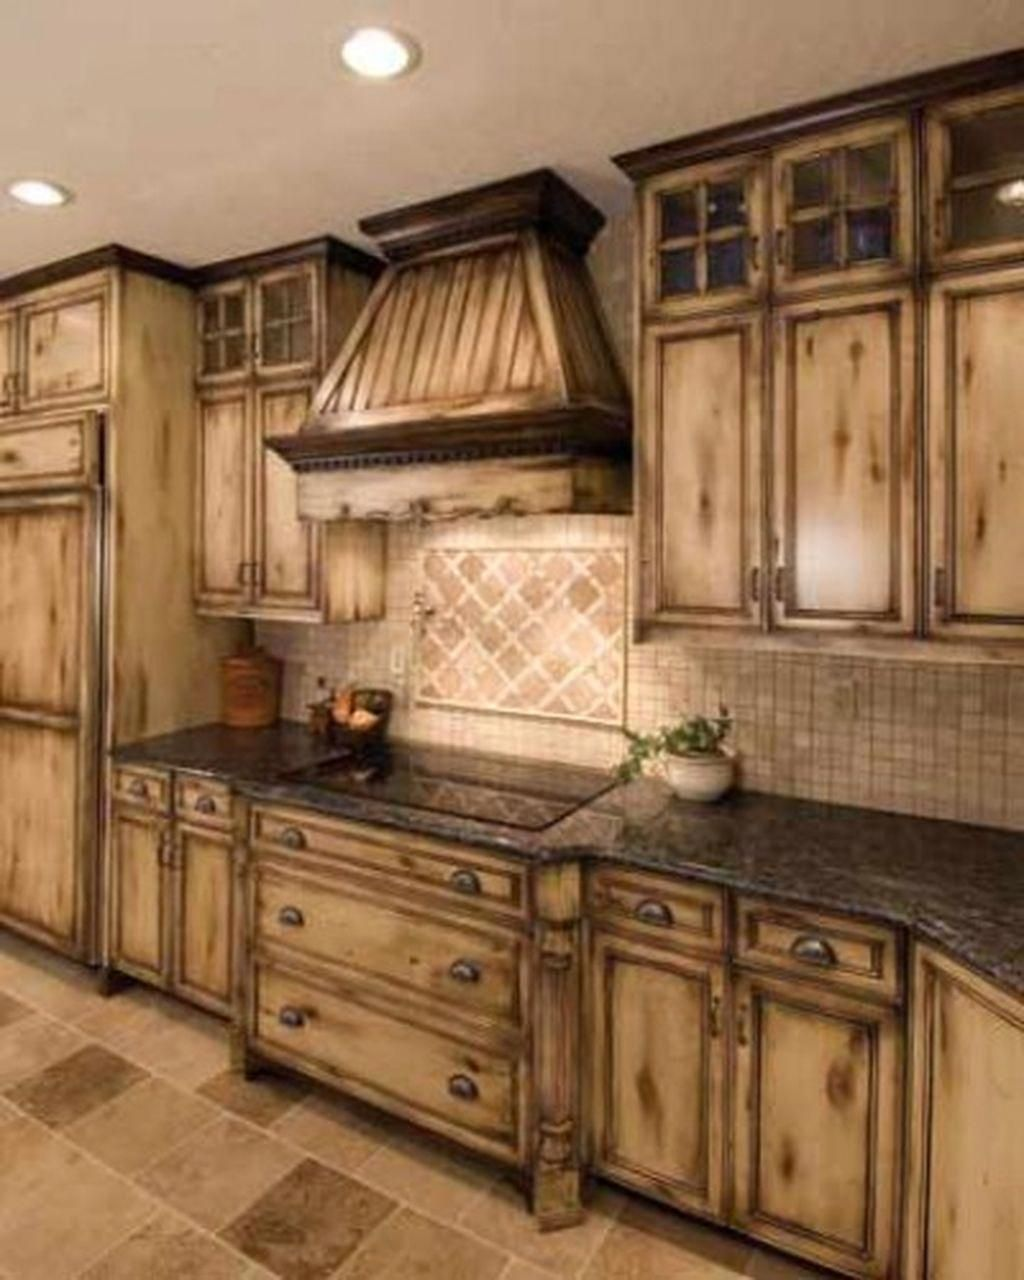 Rustic Kitchen Cabinets Rustickitchencabinets   Rustic kitchen ...